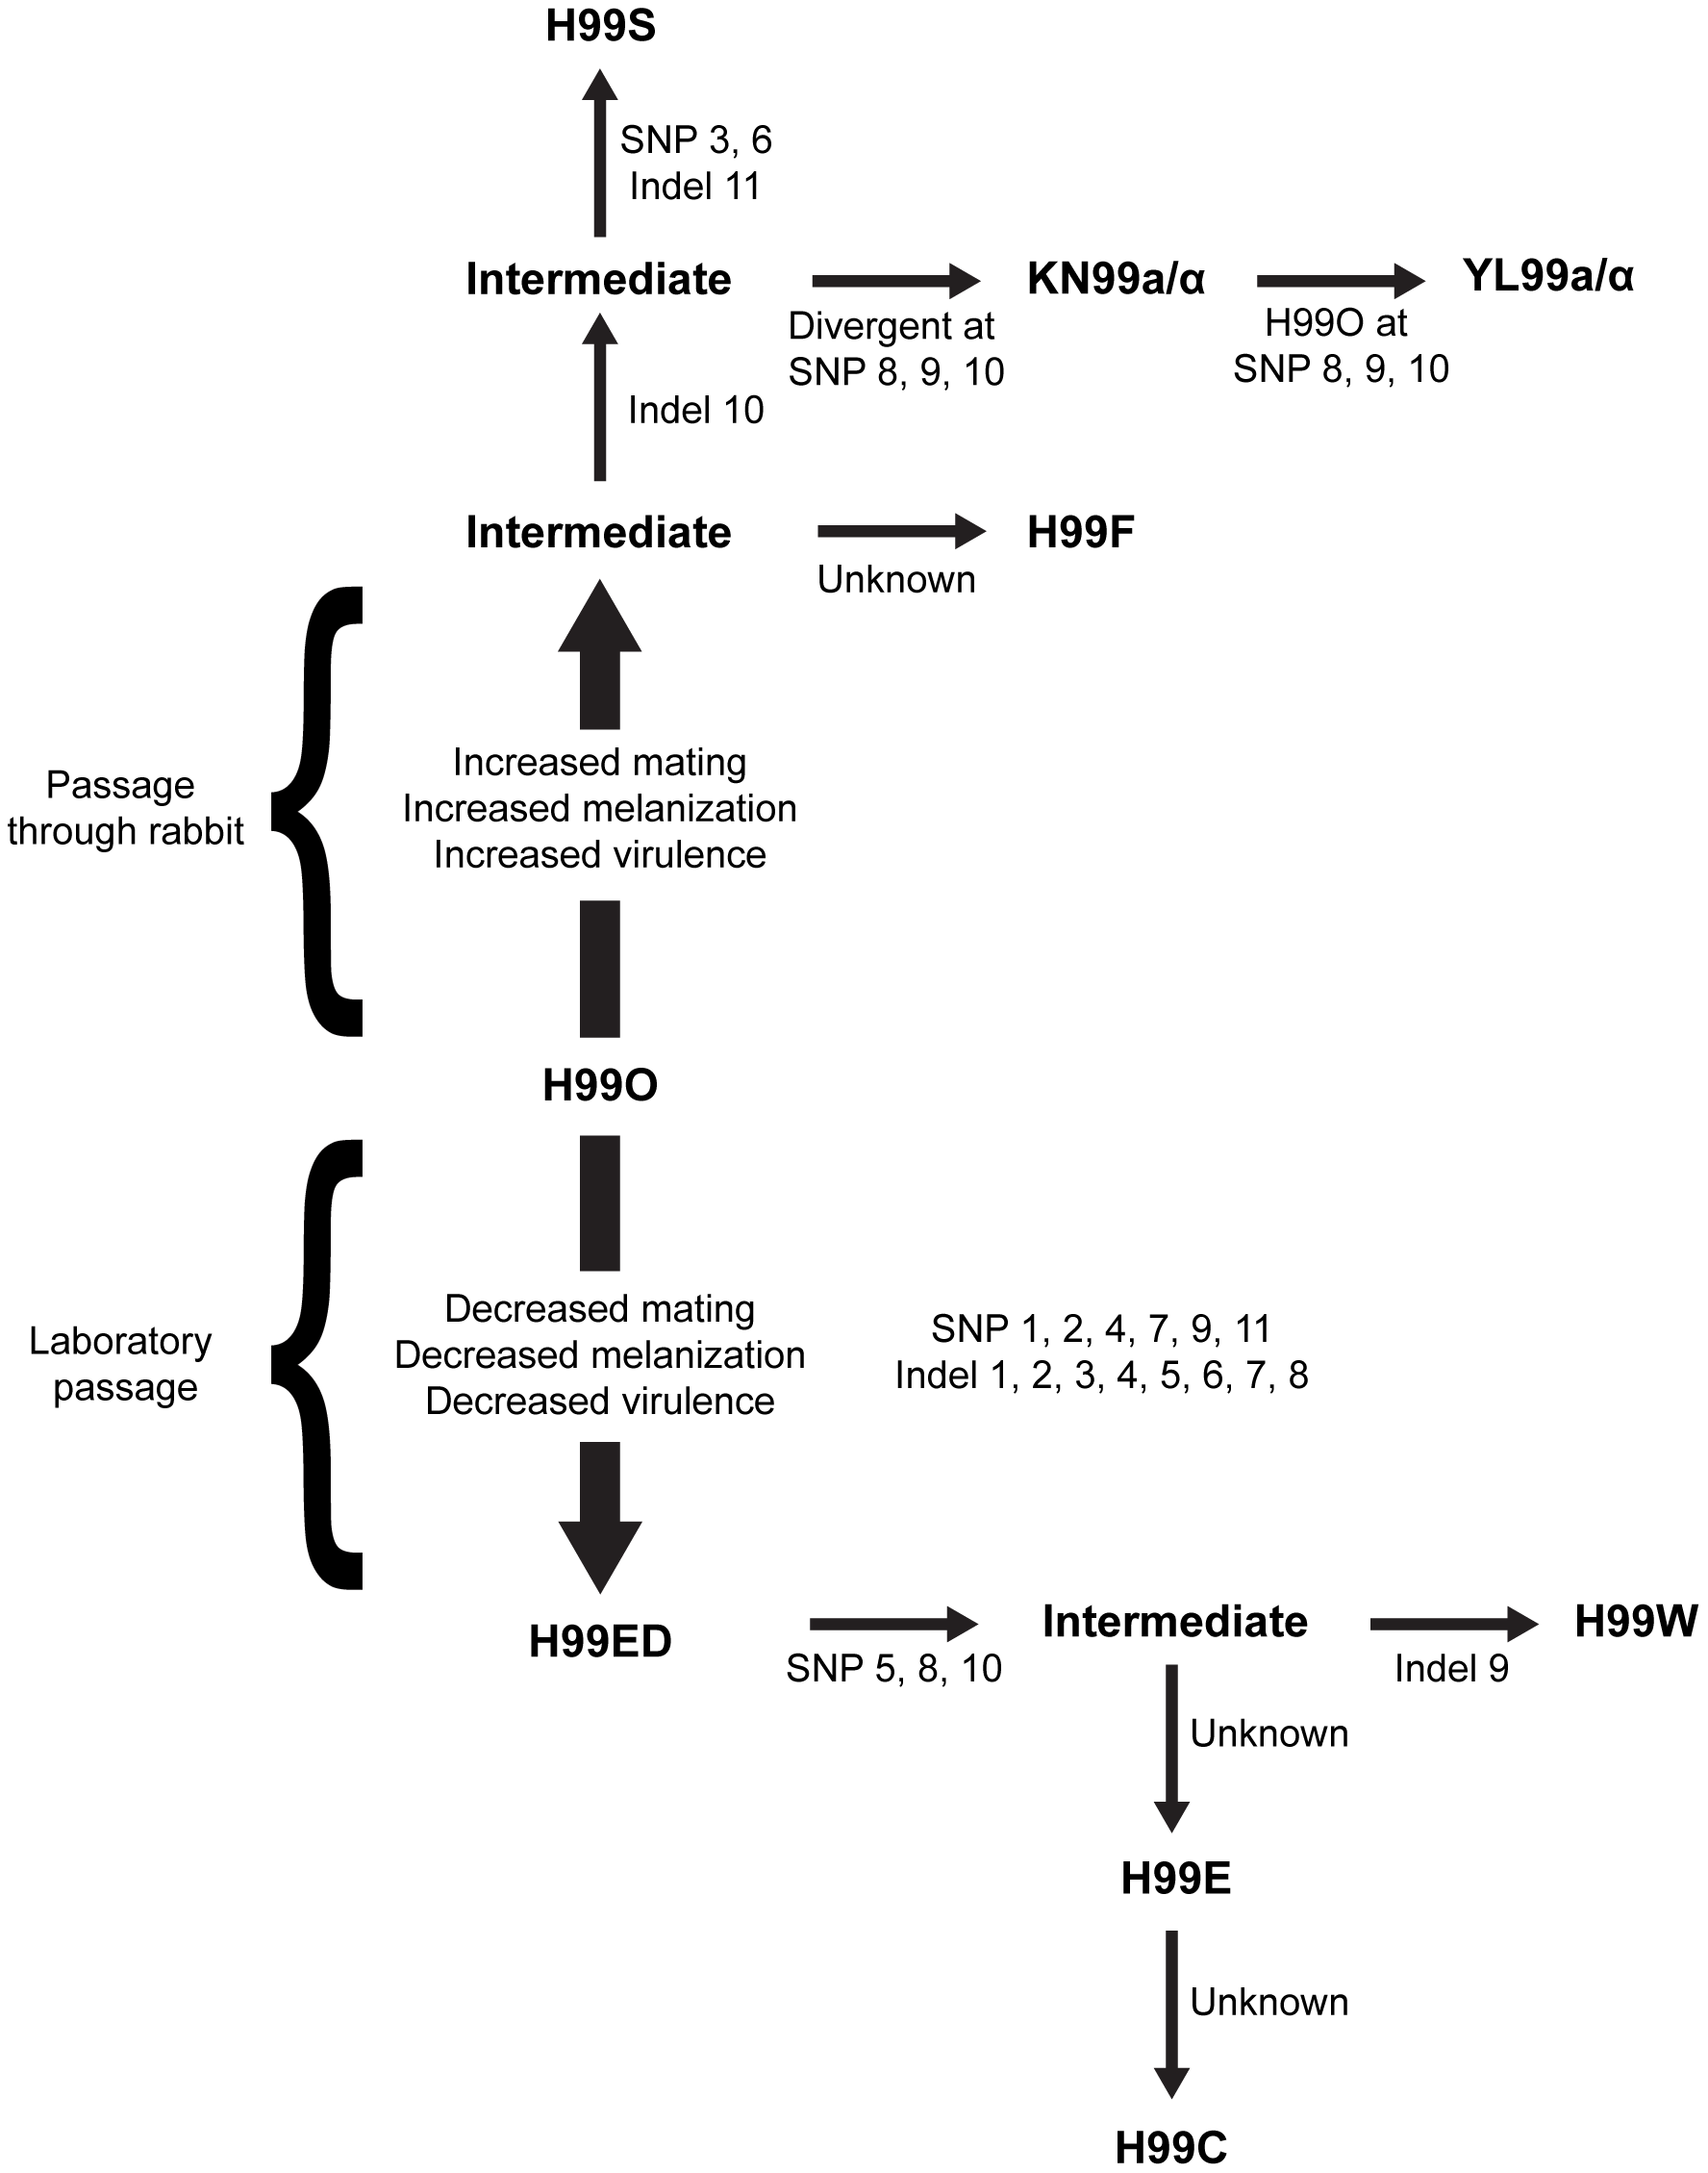 Origins of the independent lineages of H99.